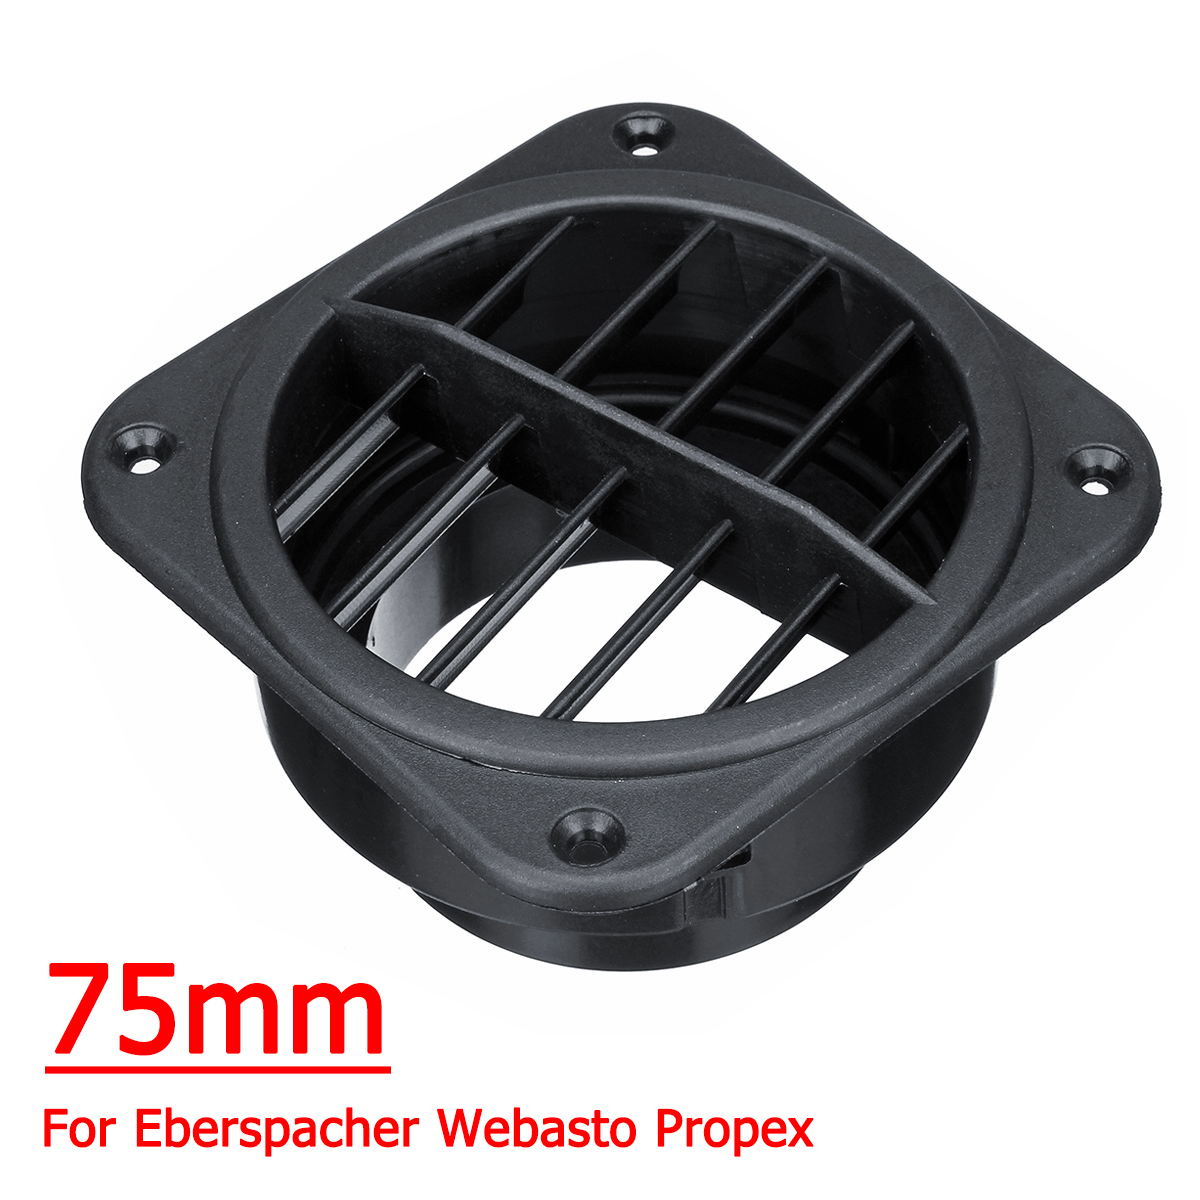 75mm Car Warm Air Vent Outlet Air Heater Ducting For Eberspacher for Webasto for Propex Plastic75mm Car Warm Air Vent Outlet Air Heater Ducting For Eberspacher for Webasto for Propex Plastic